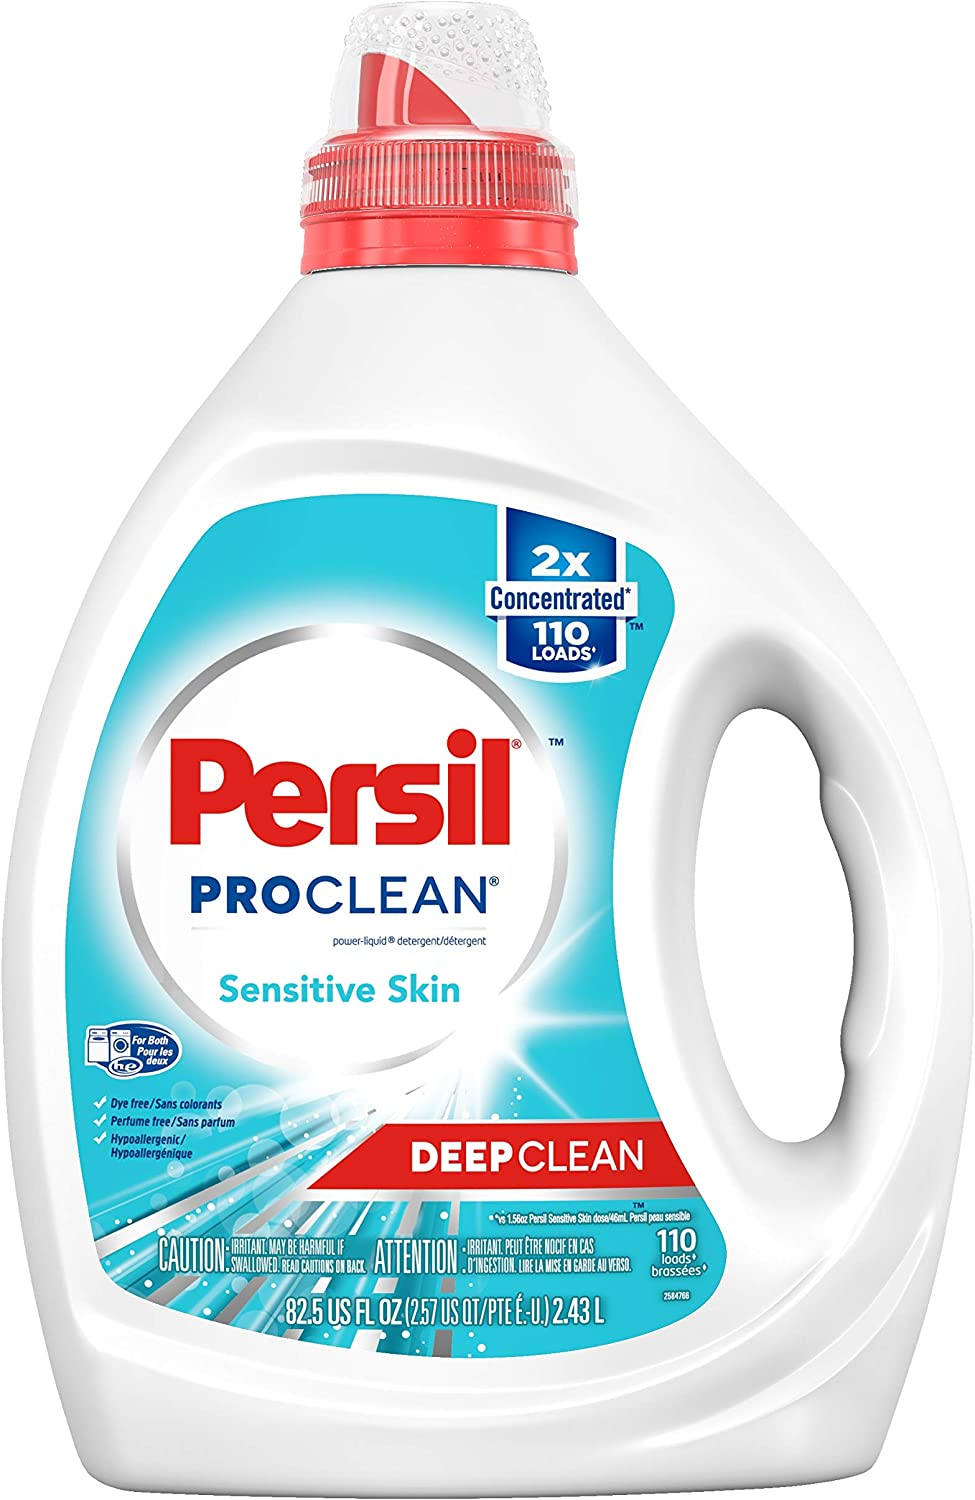 Persil ProClean Liquid Laundry Detergent, Sensitive Skin, 2X Concentrated, 110 Loads, 82.5